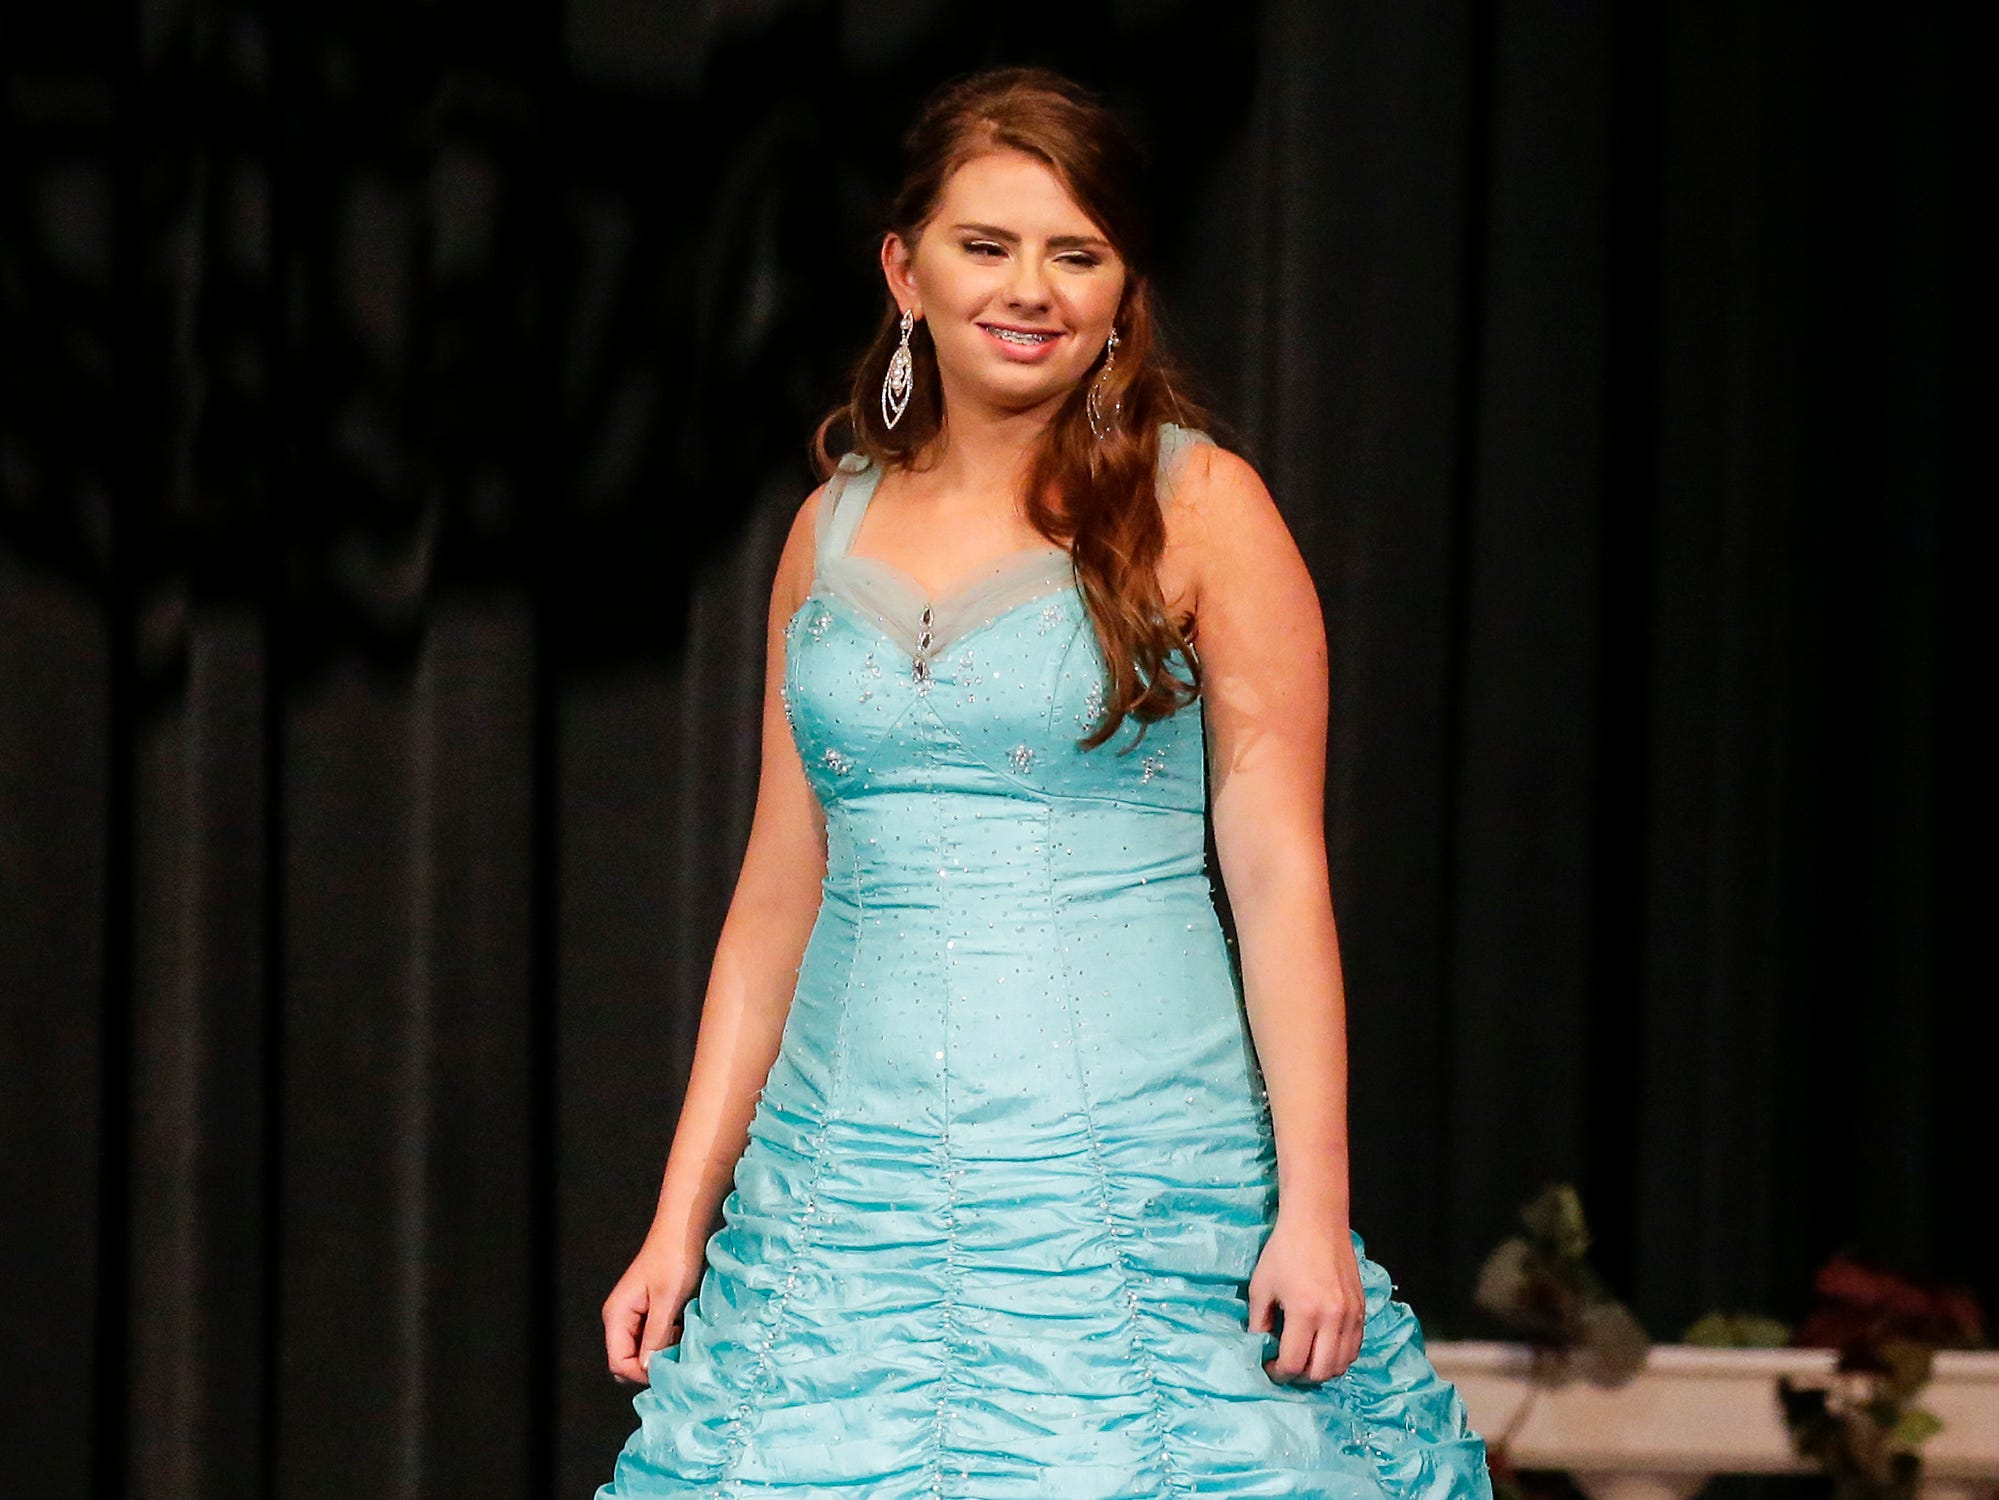 Miss Fond du Lac's Outstanding Teen contestant  Kaytie Butzke participates in the evening wear portion of the Miss Fond du Lac, Miss Wisconsin Central and Miss Fond du Lac's Outstanding Teen 2019 scholarship competitions Saturday, March 9, 2019 at the Goodrich Little Theater in Fond du Lac, Wis. Doug Raflik/USA TODAY NETWORK-Wisconsin